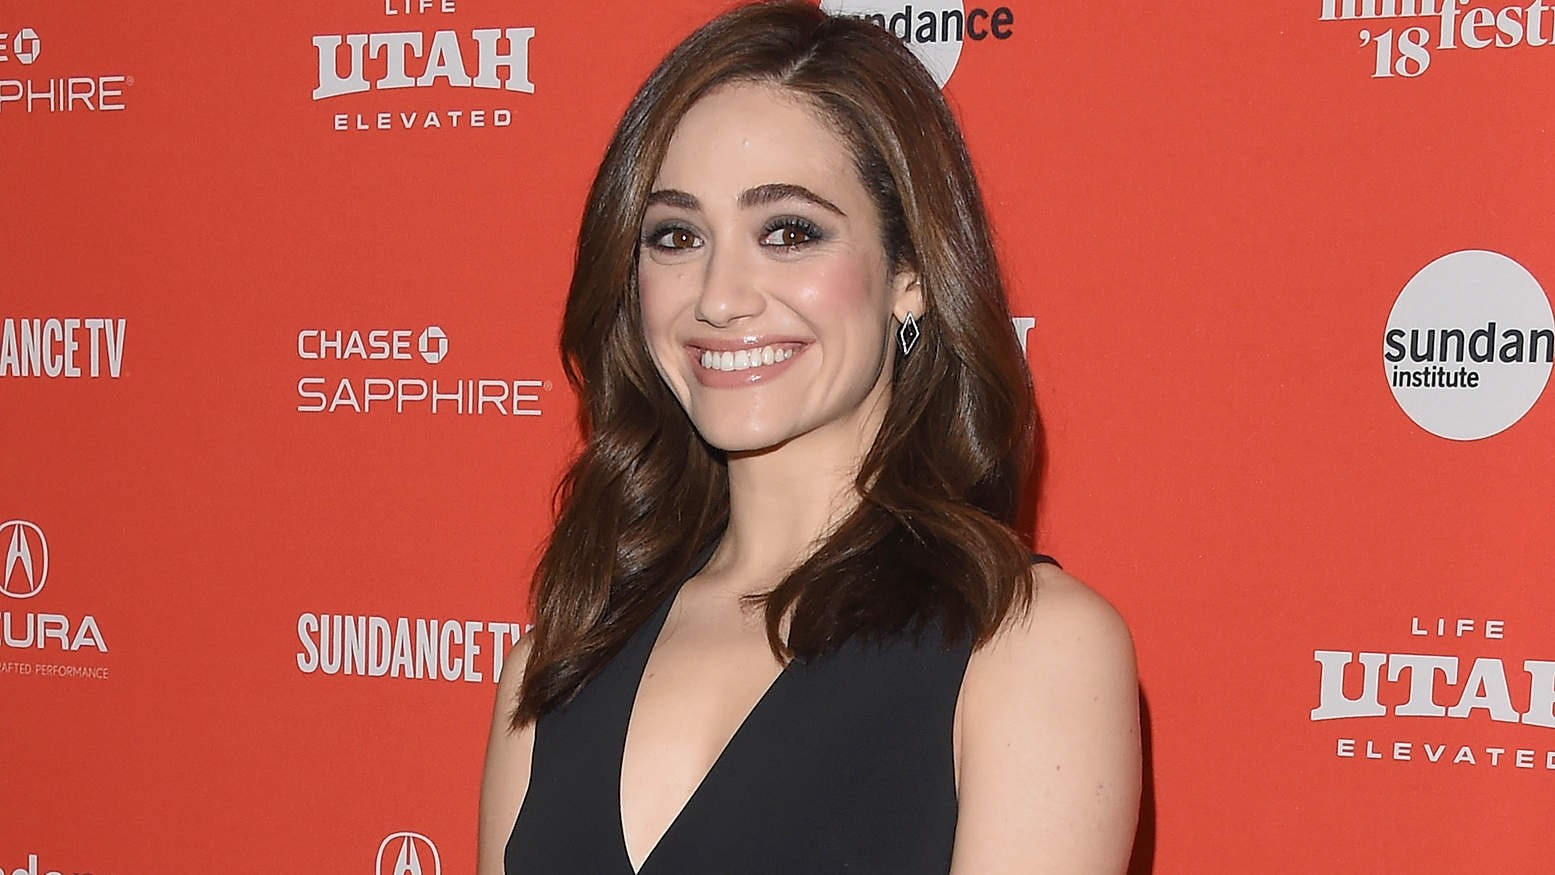 Emmy Rossum Reveals What She 'Actually Weighs' to Help Fans to Look Beyond the Number on the Scale